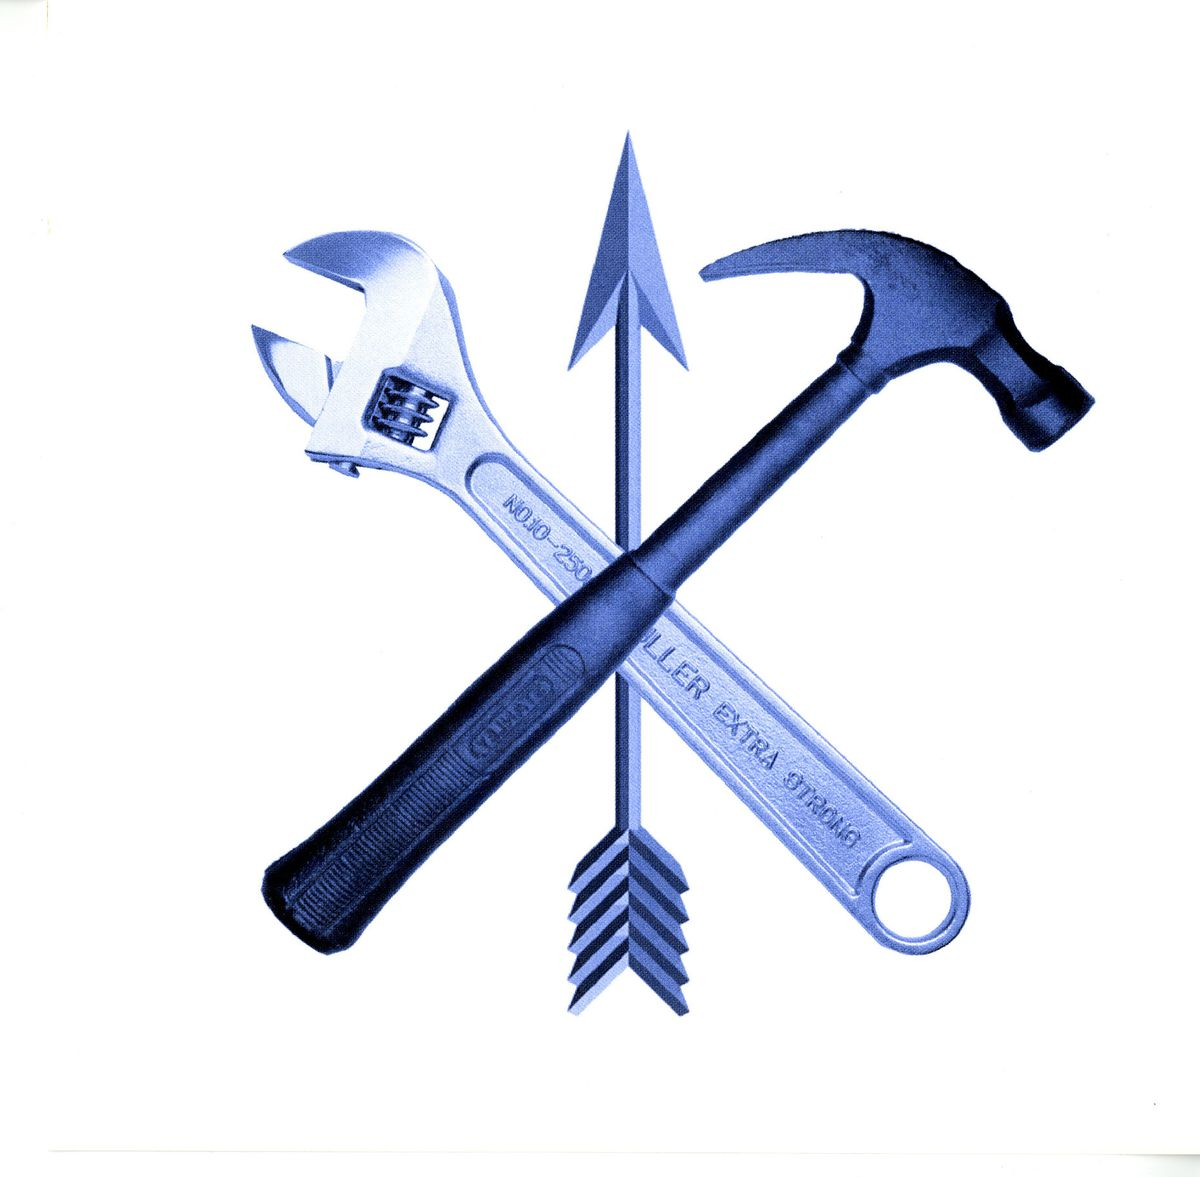 A holiday card from landscape architects at the SWA Group displays two prominent tools of the building trade: a hammer and a wrench.